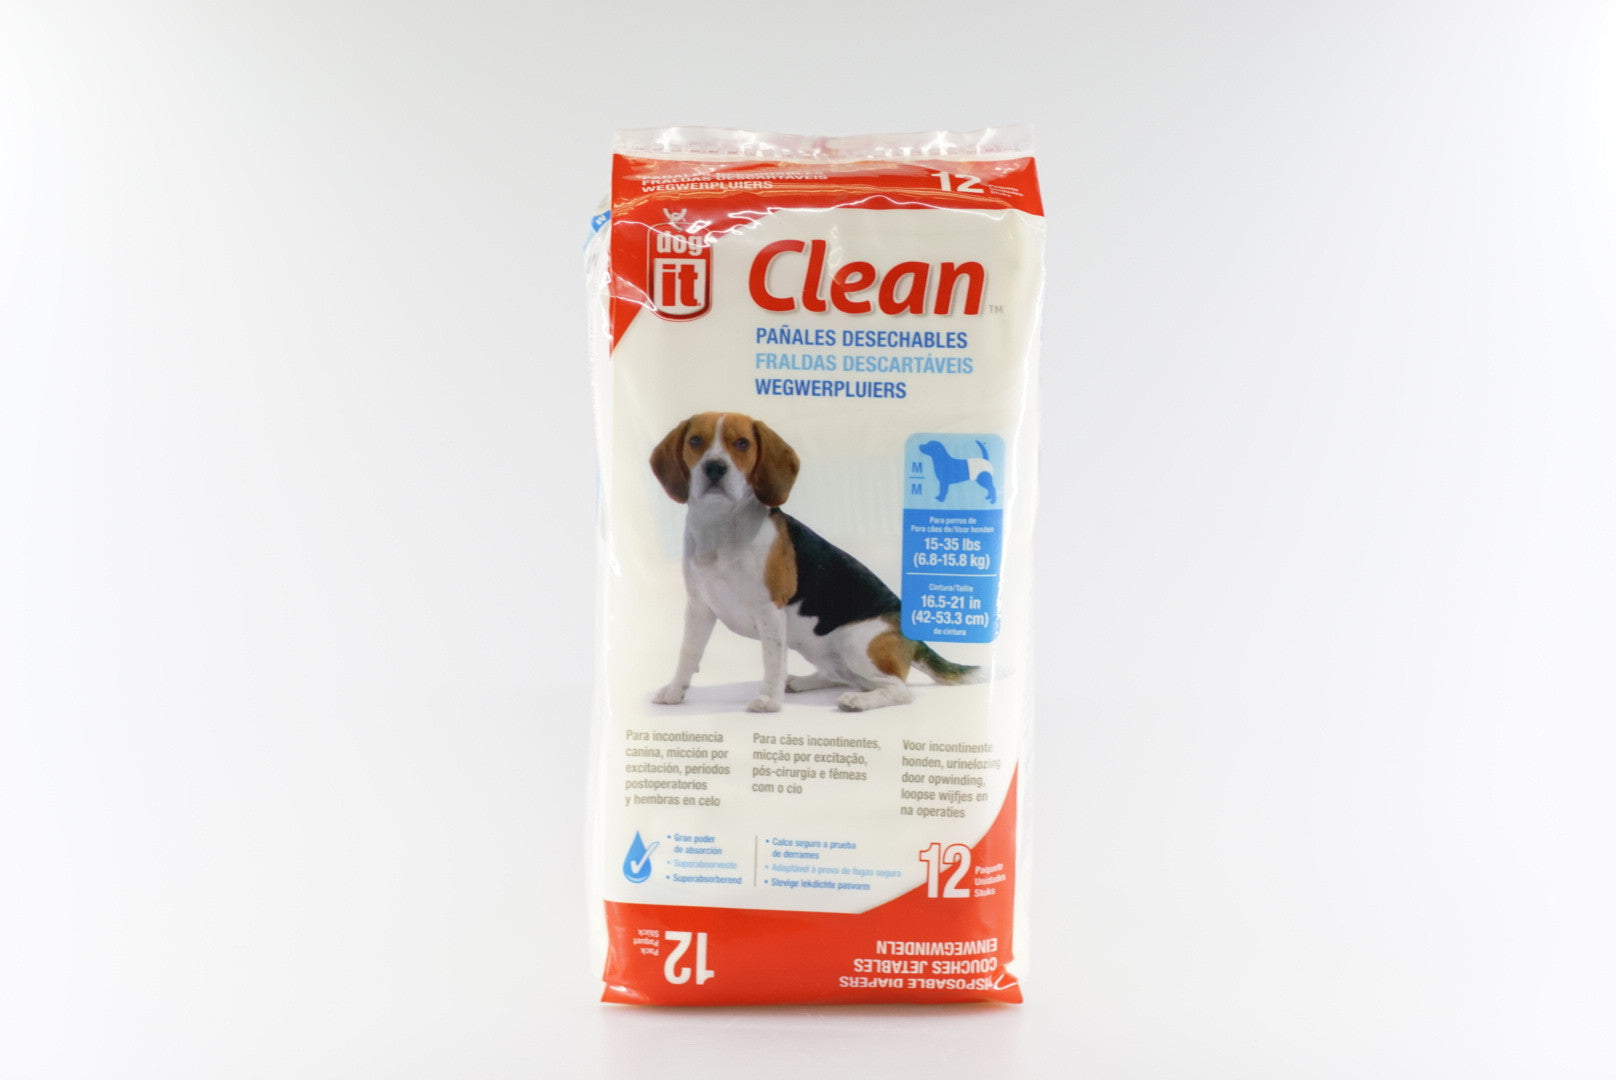 Dogit Clean Disposable Diapers